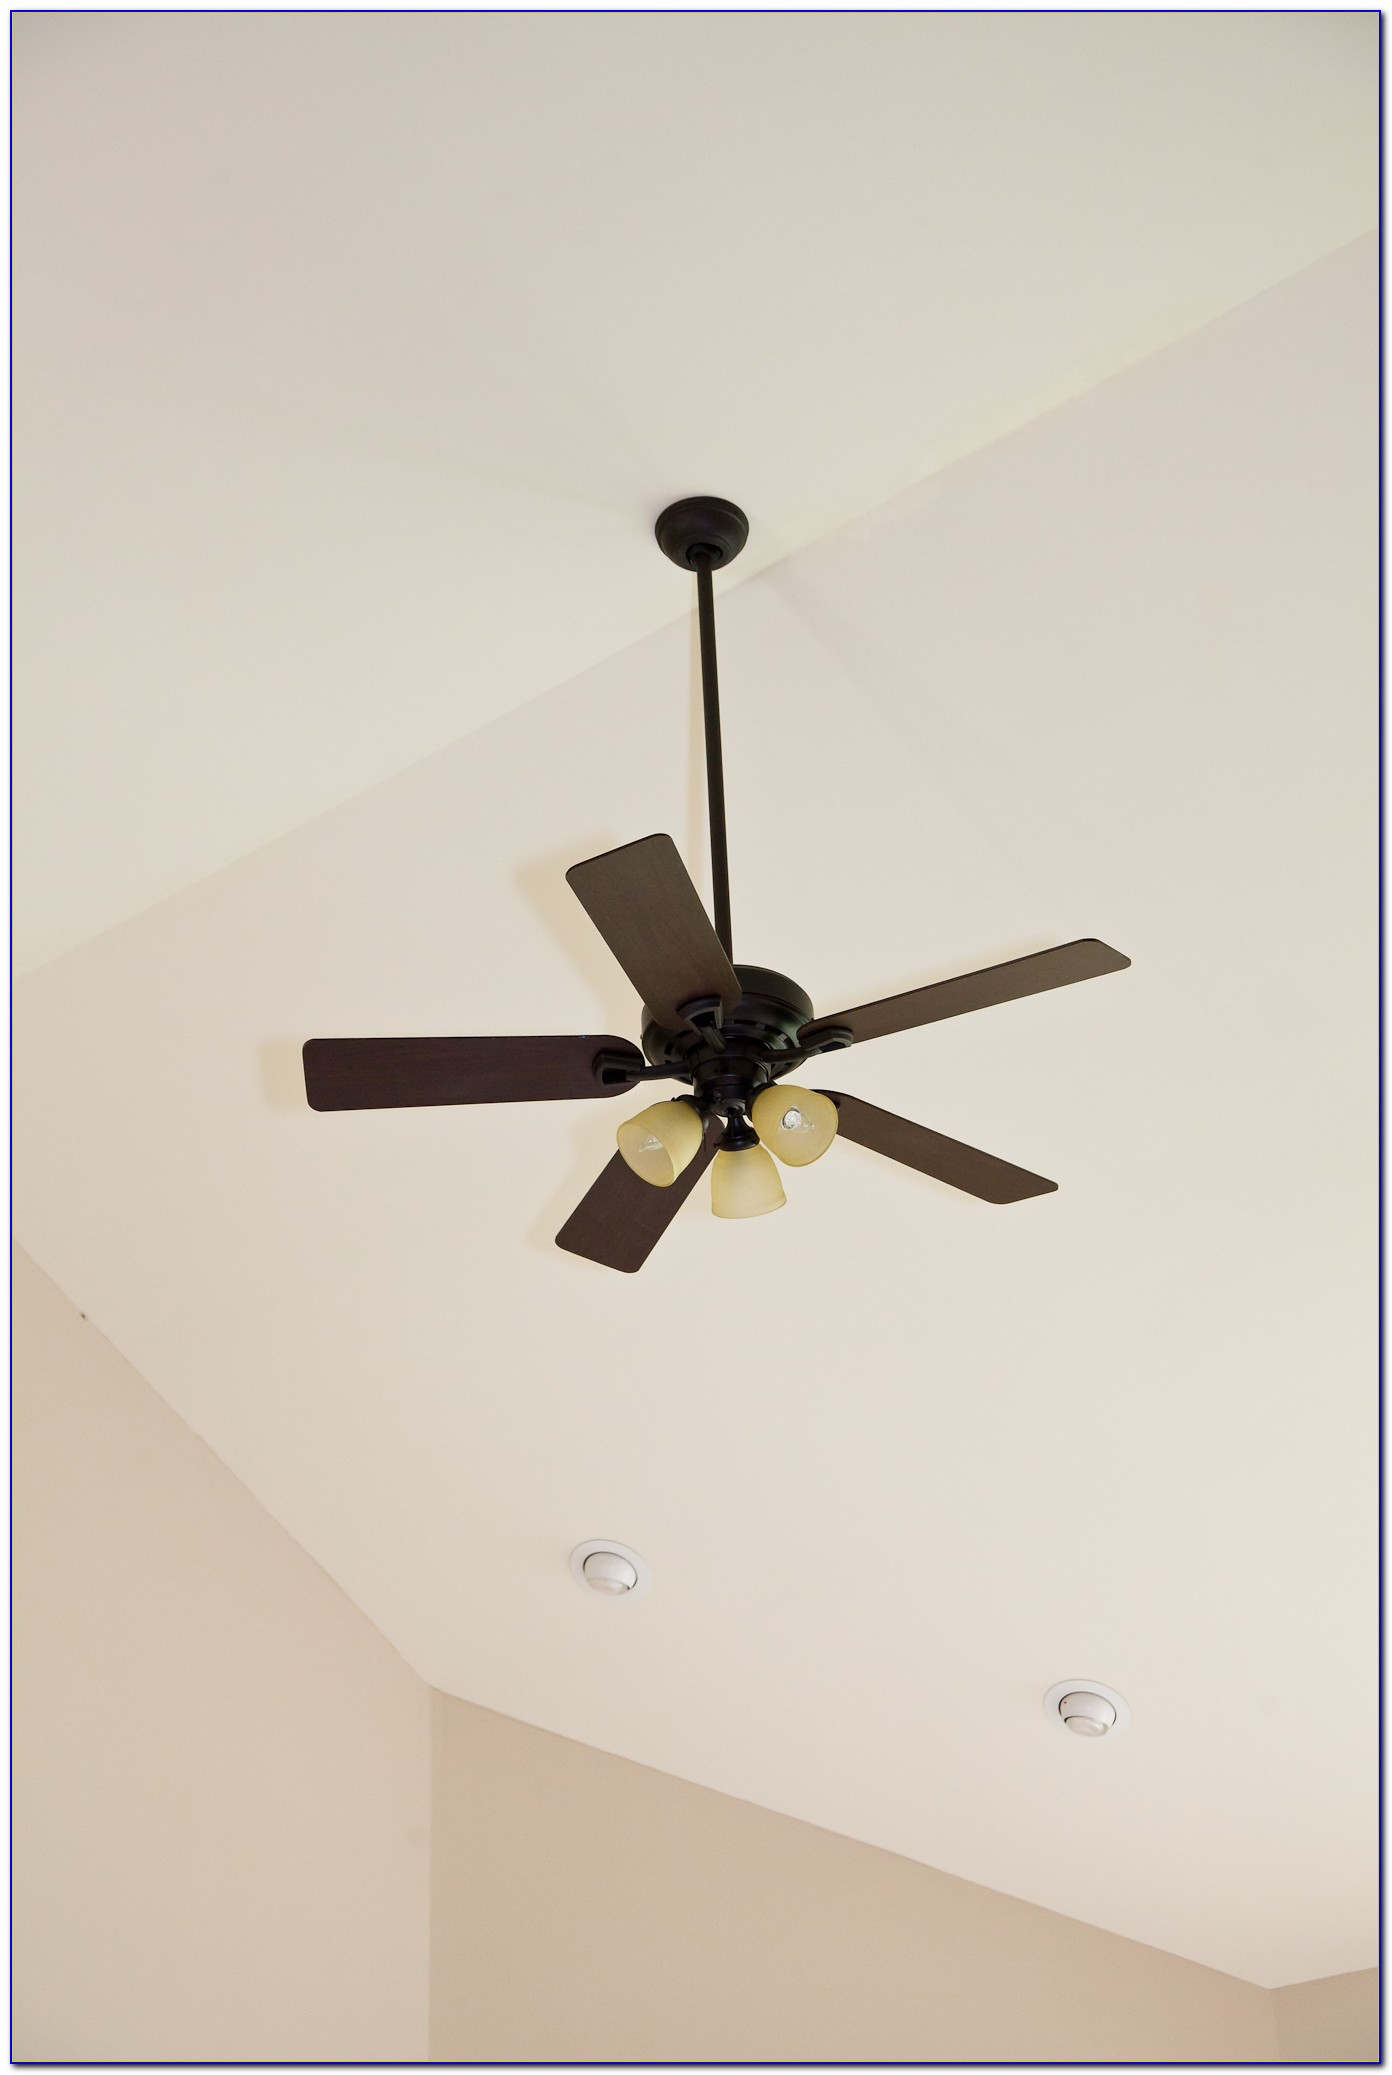 Ceiling Fans For High Vaulted Ceilings